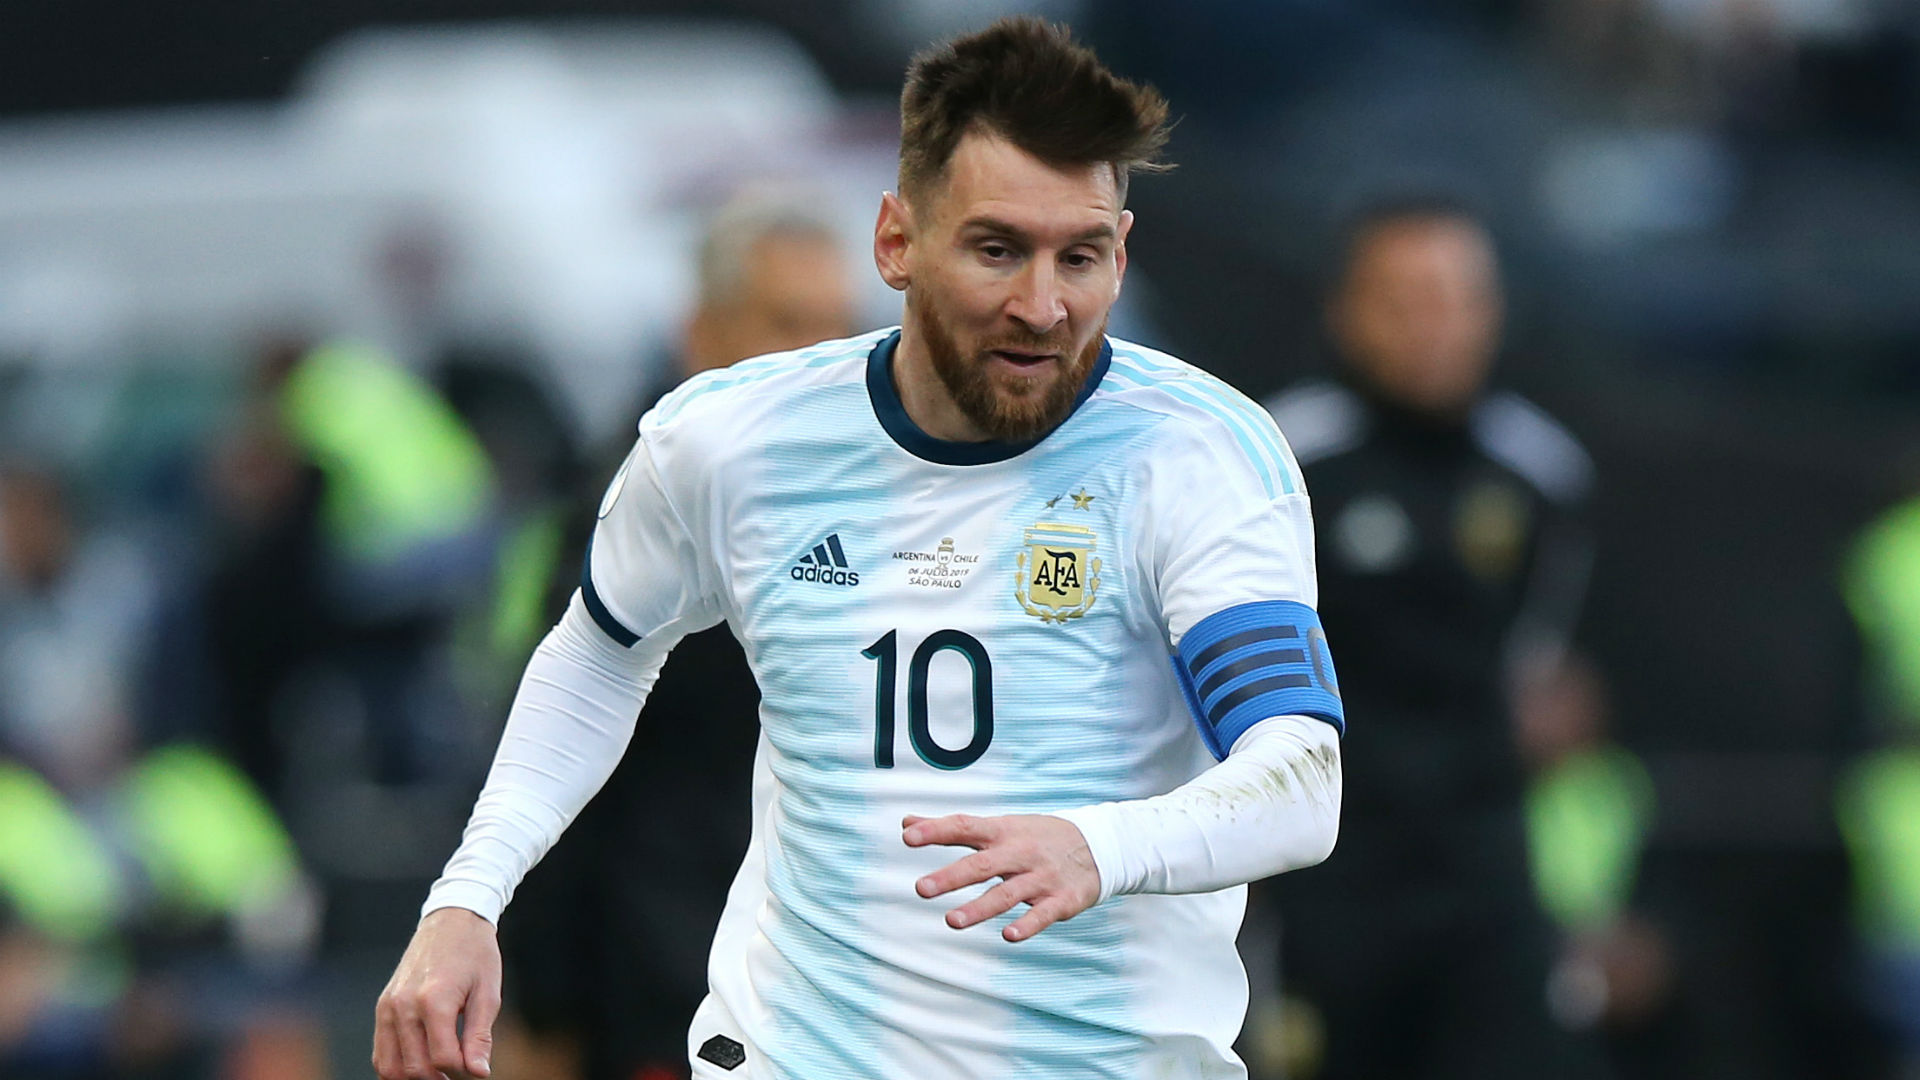 Brazil not scared of Messi and Argentina despite Neymar absence, says Thiago Silva